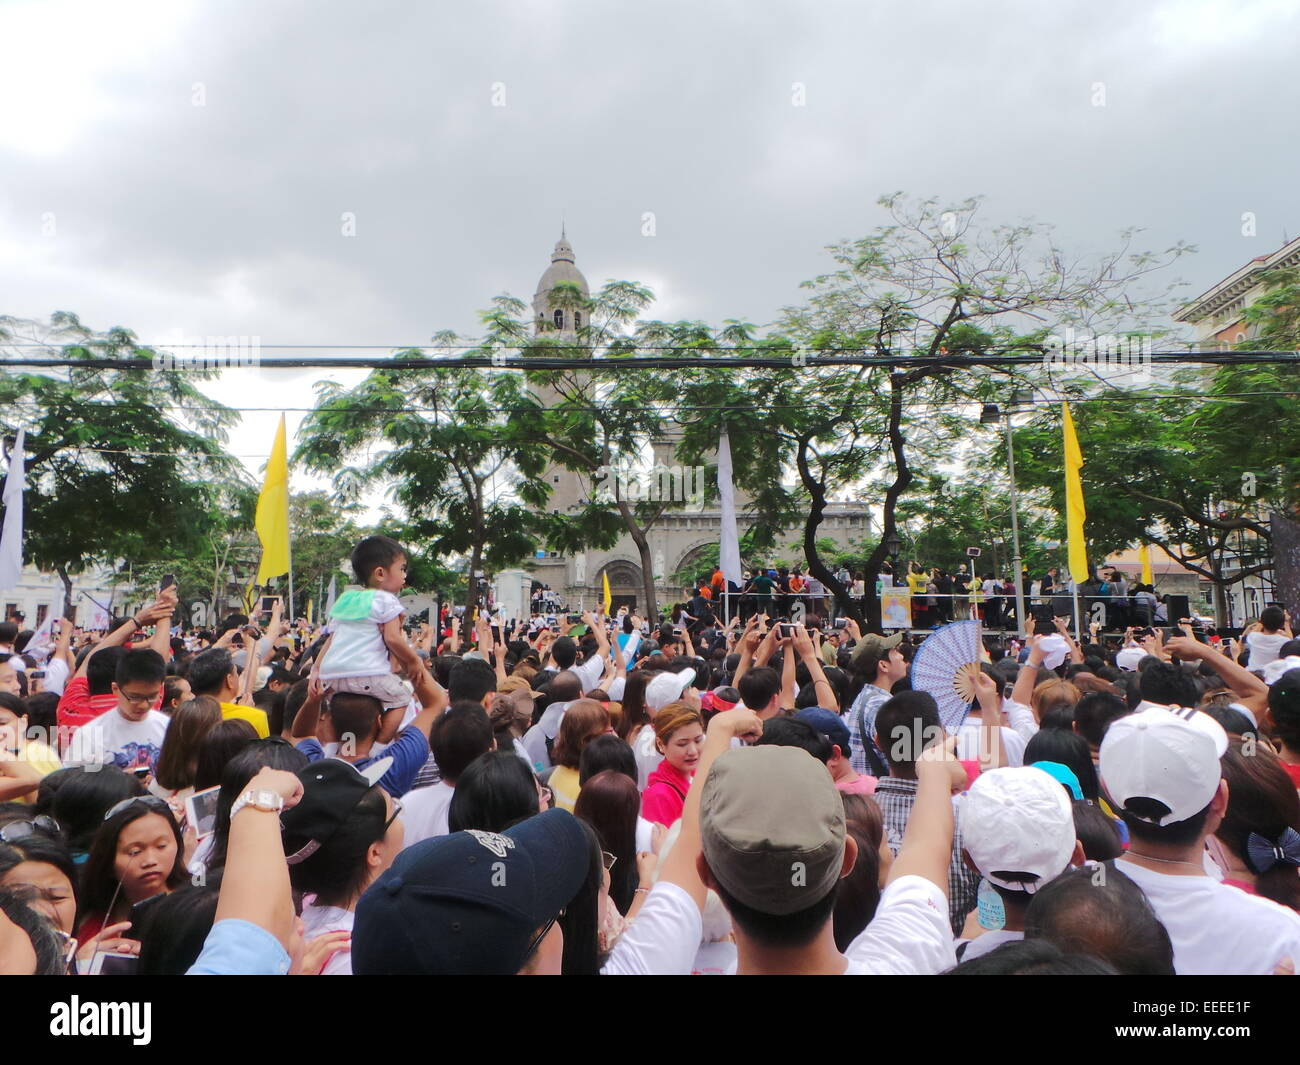 Thousands of Catholic devotees, who patiently waited for long hours, greeted Pope Francis with loud cheers as he - Stock Image